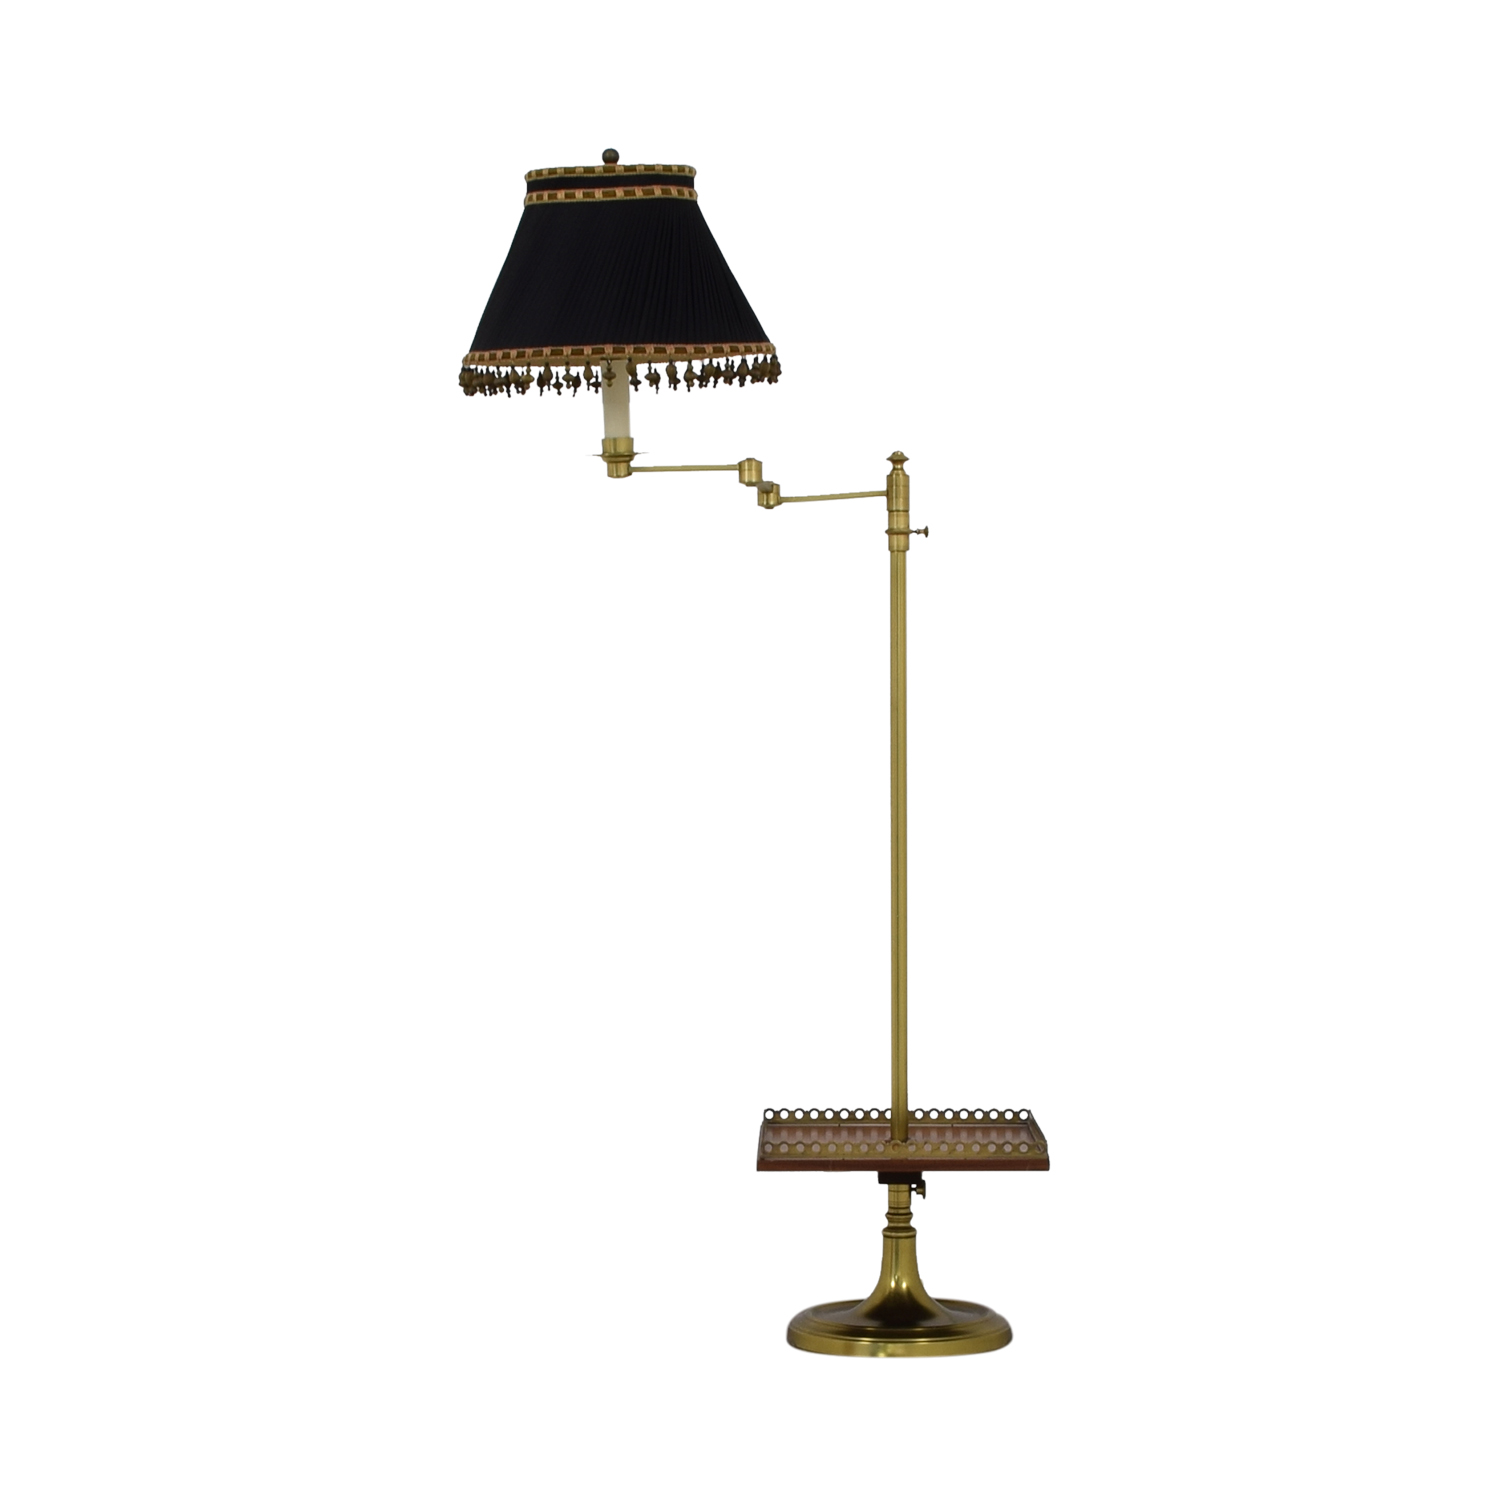 Brass Table Lamp with Tray